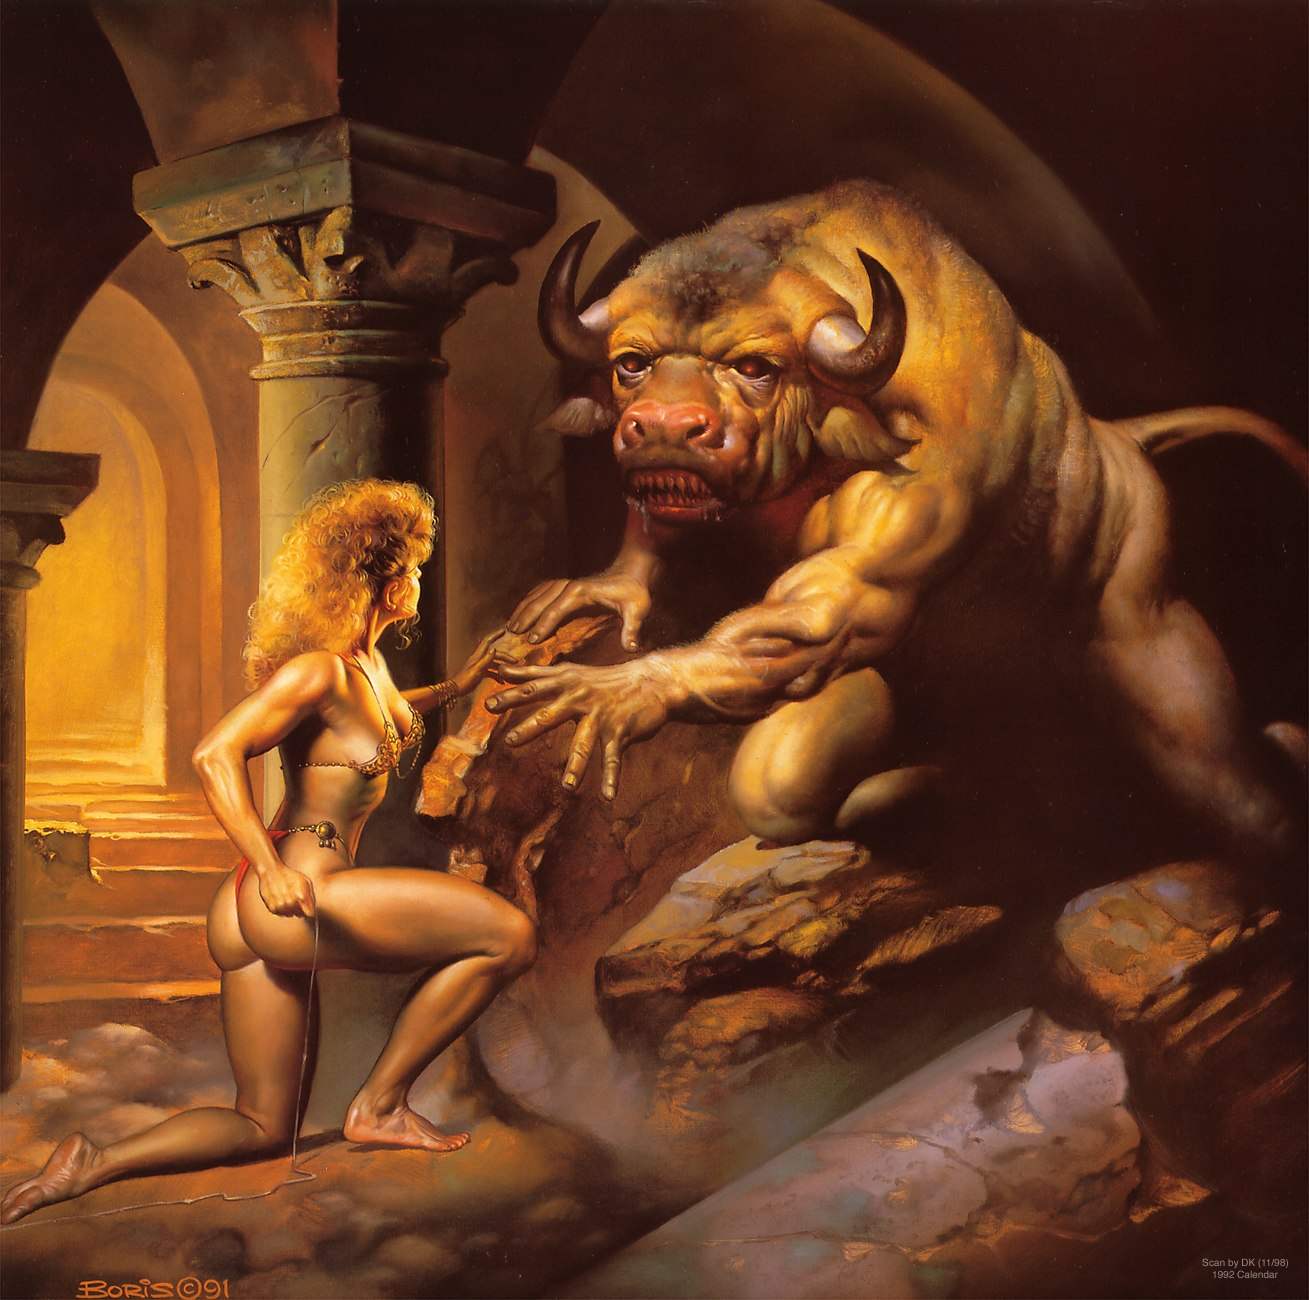 Minotaur screwing woman art nackt bitches